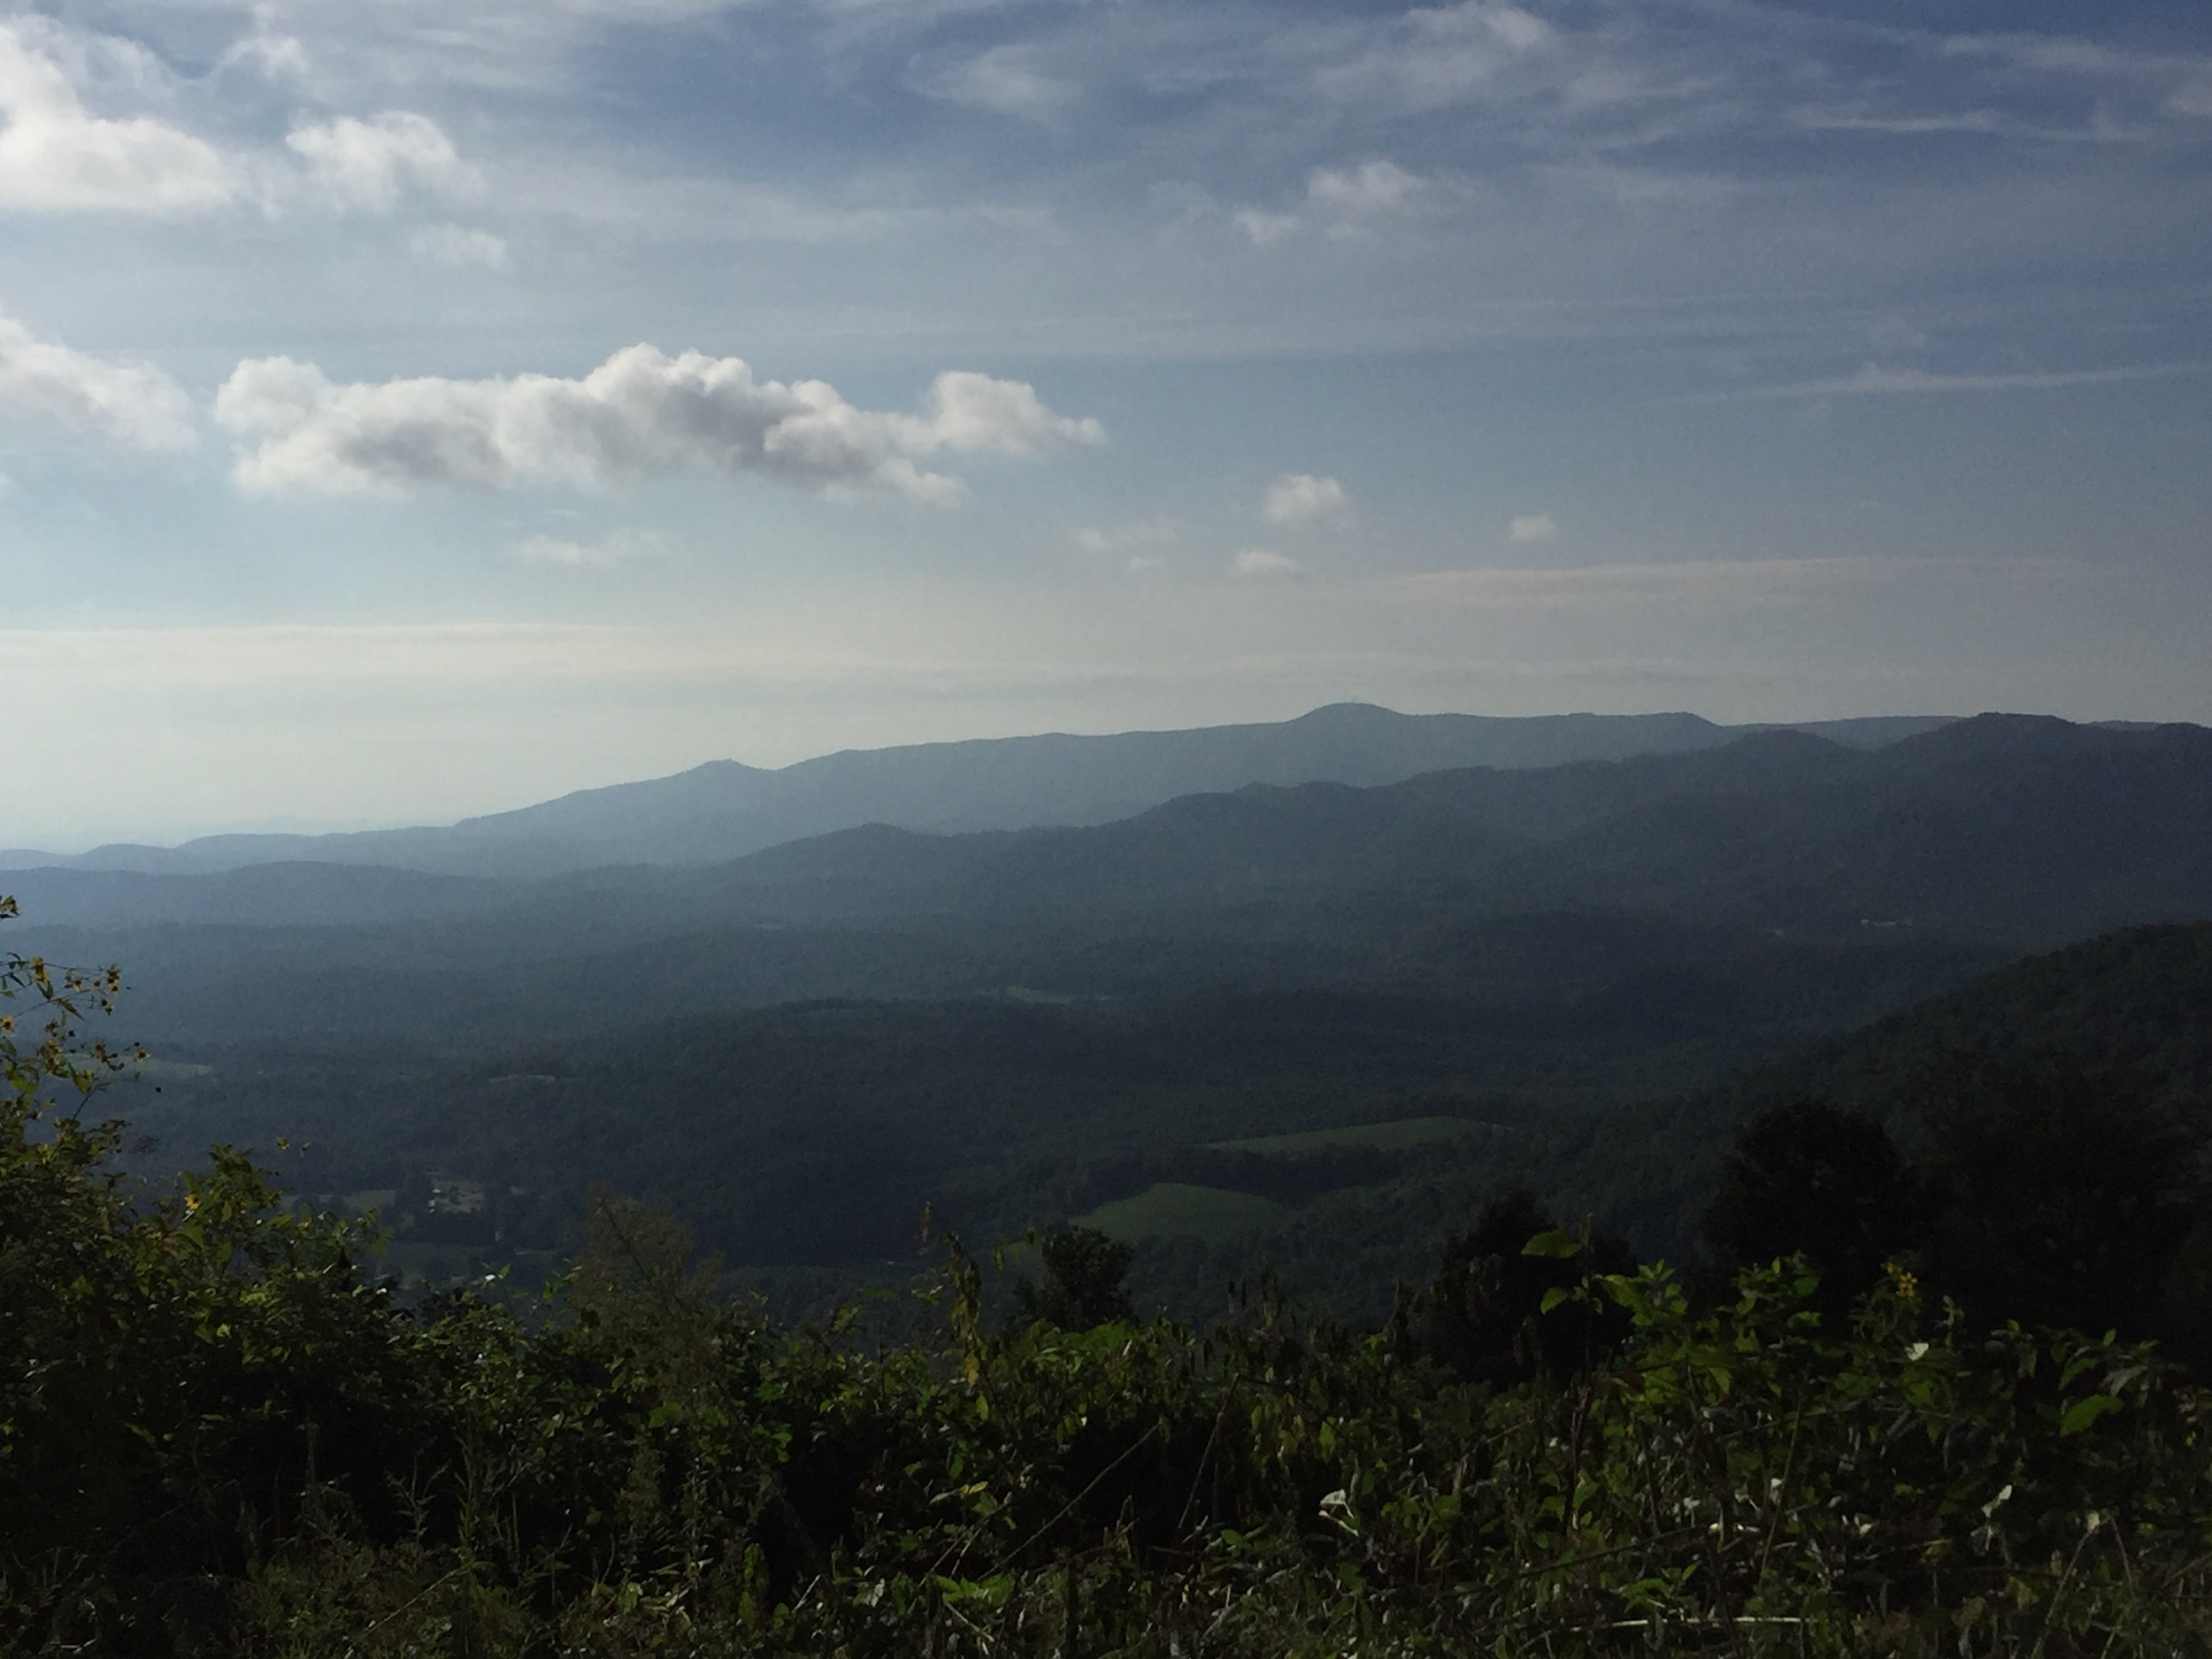 The views up Belcher were awesome!